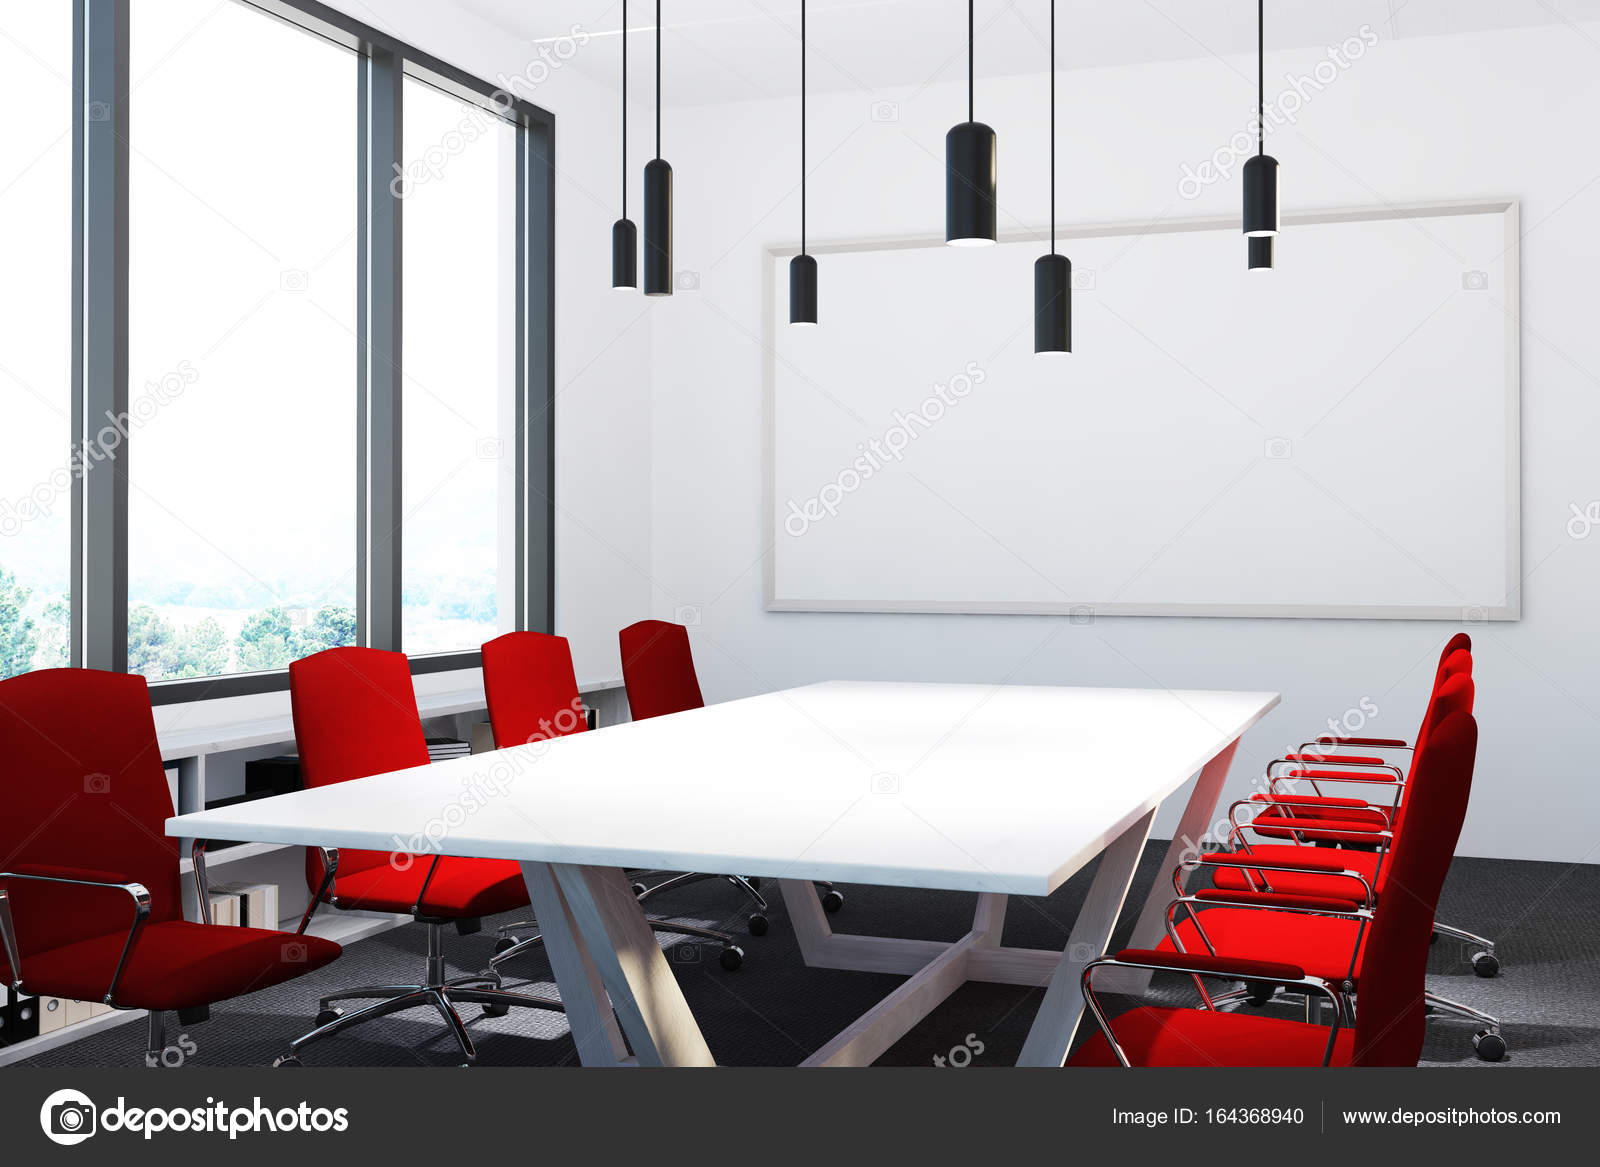 Meeting Room With Red Chairs Whiteboard Stock Photo - Whiteboard conference table